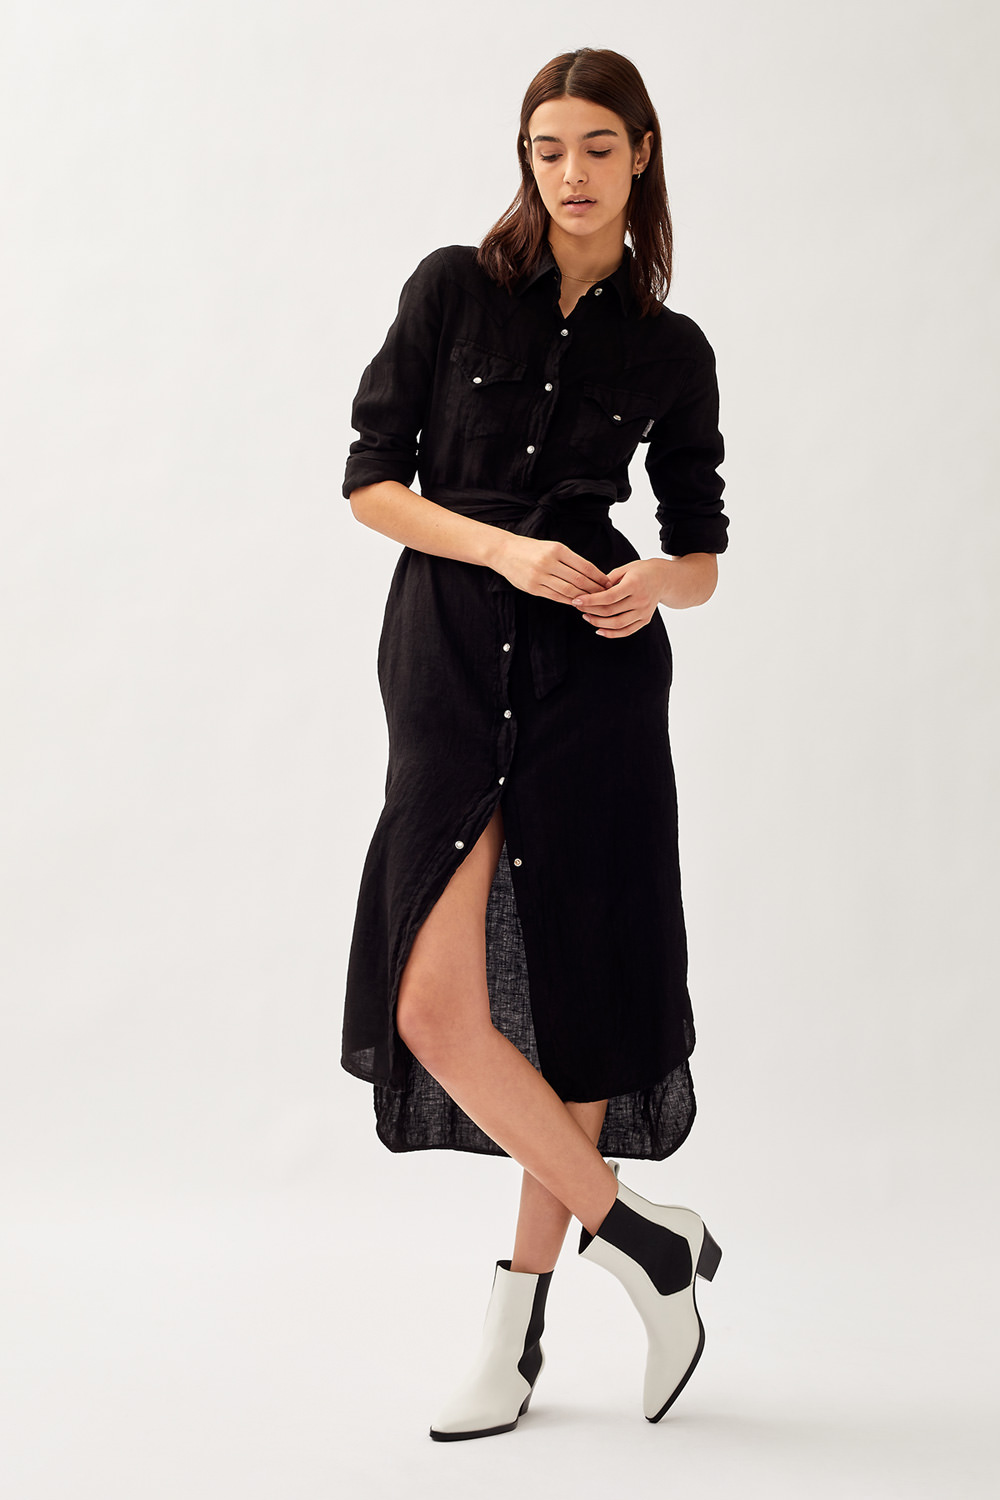 ROY ROGERS: MARLENA SHIRT DRESS IN DYED LINEN